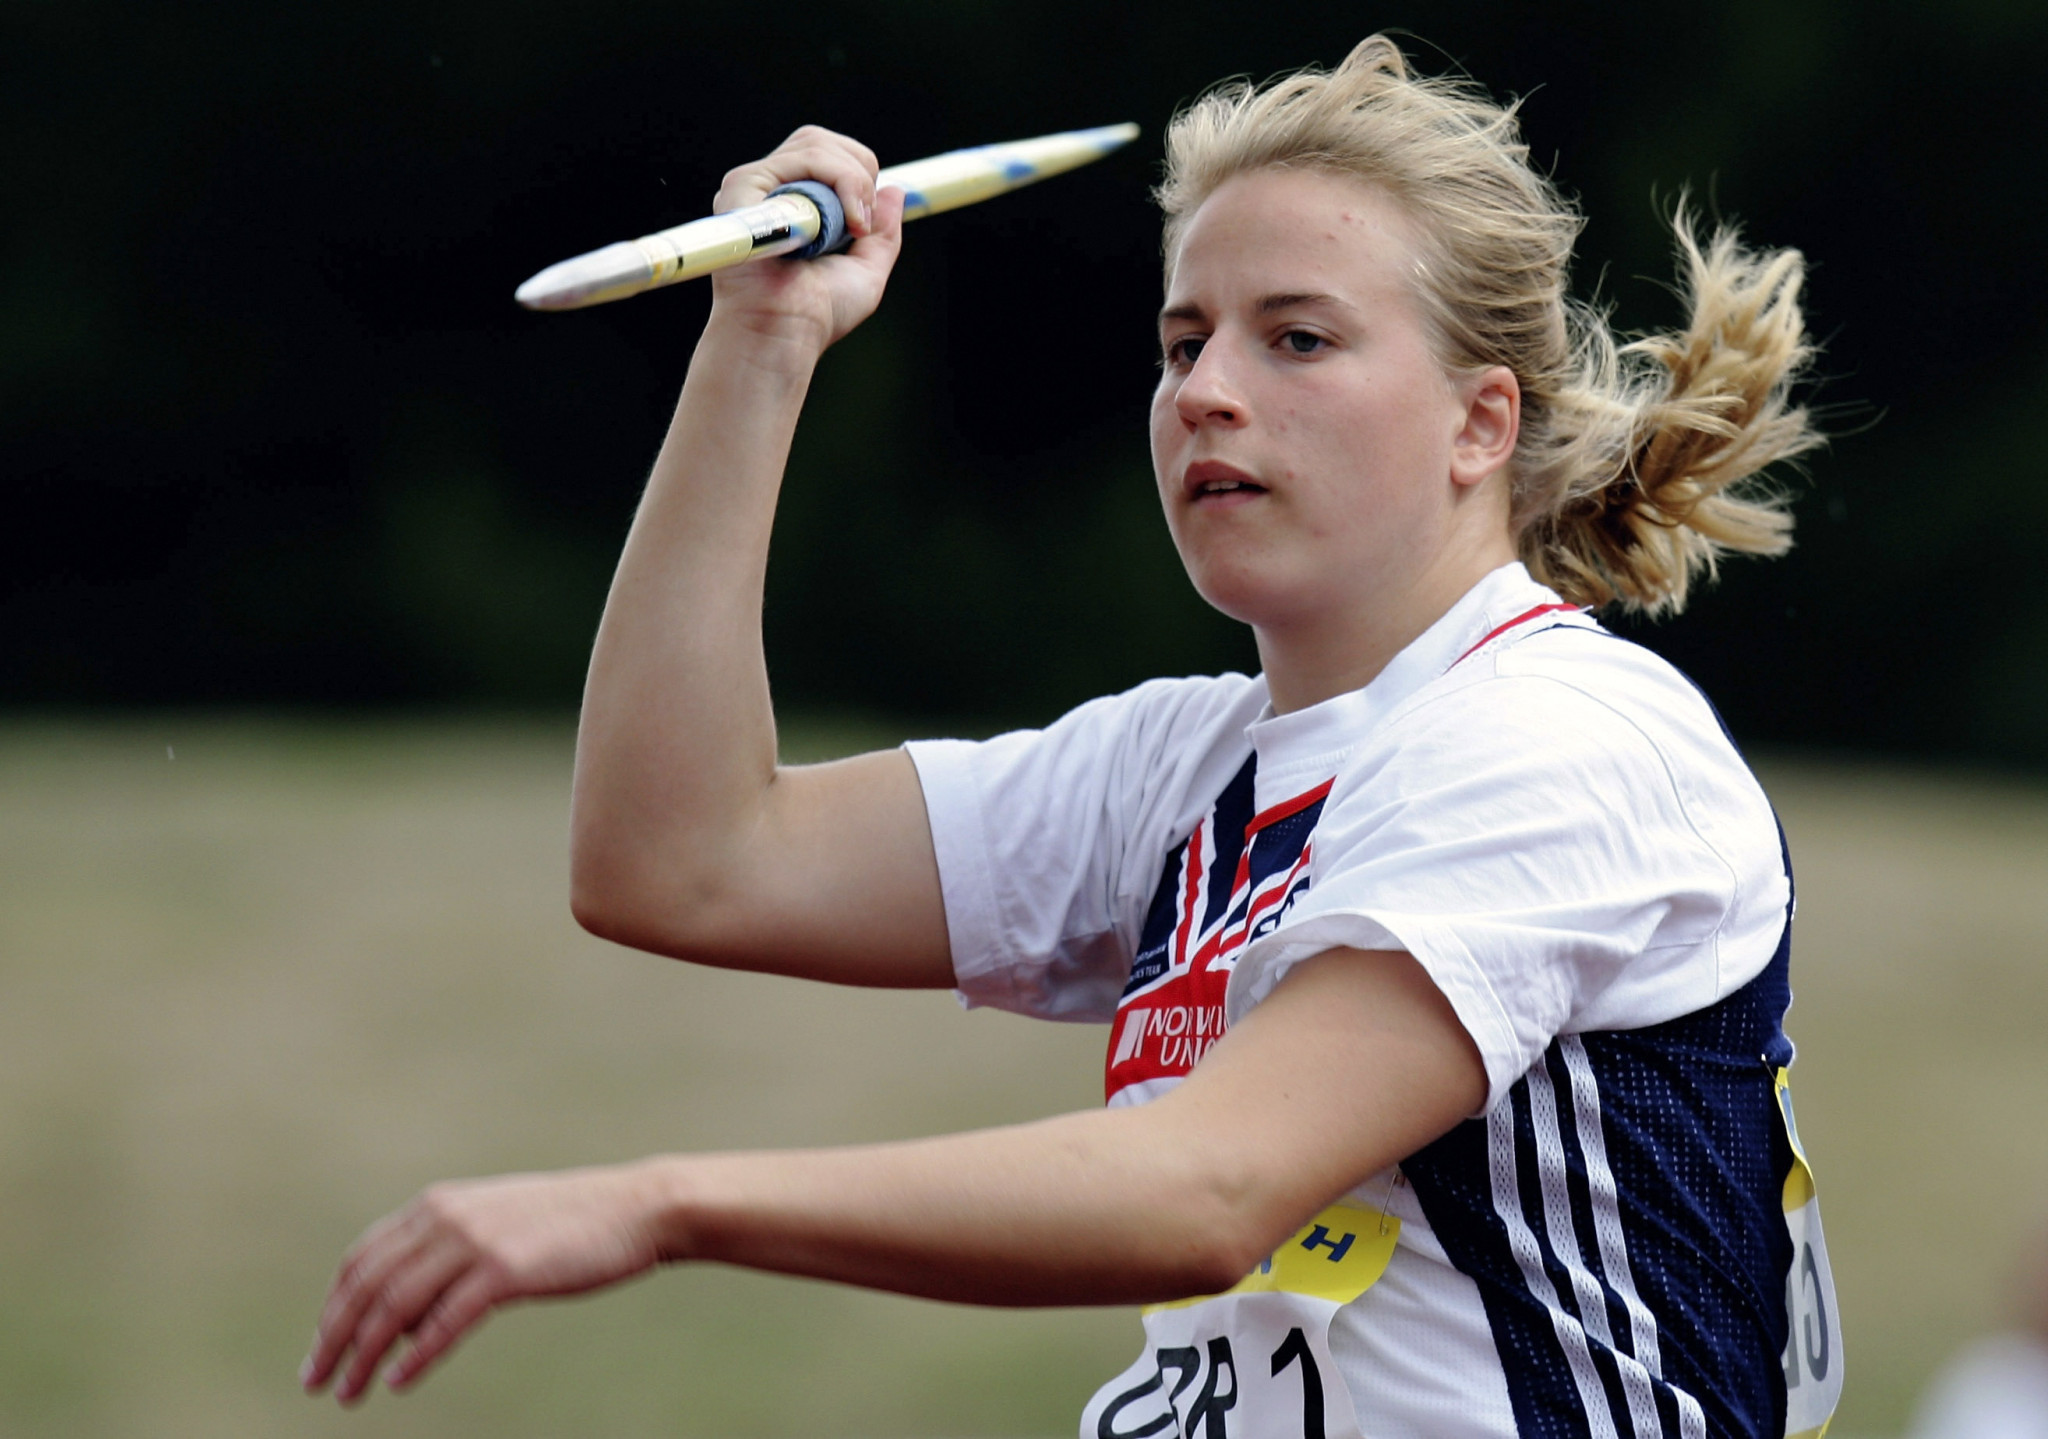 British Javelin thrower handed four-year ban following positive drugs test